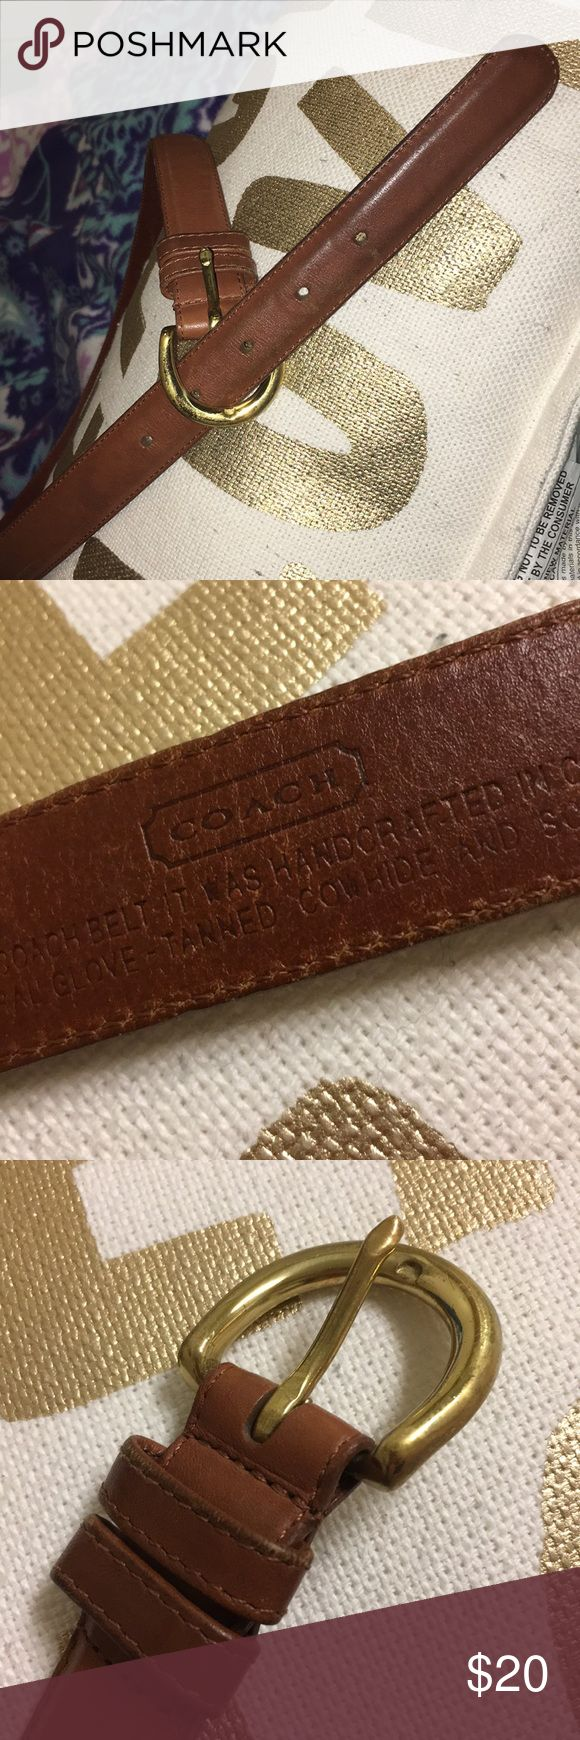 100% Leather Coach Belt PERFECT CONDITION! Brown Coach leather belt W/ brass buckle and 5 holes! Handmade in Costa Rica. Size Medium.  LIKE THE ITEM BUT NOT THE PRICE? SEND ME AN OFFER!  PET FREE AND SMOKE FREE HOME 🚭 Coach Accessories Belts